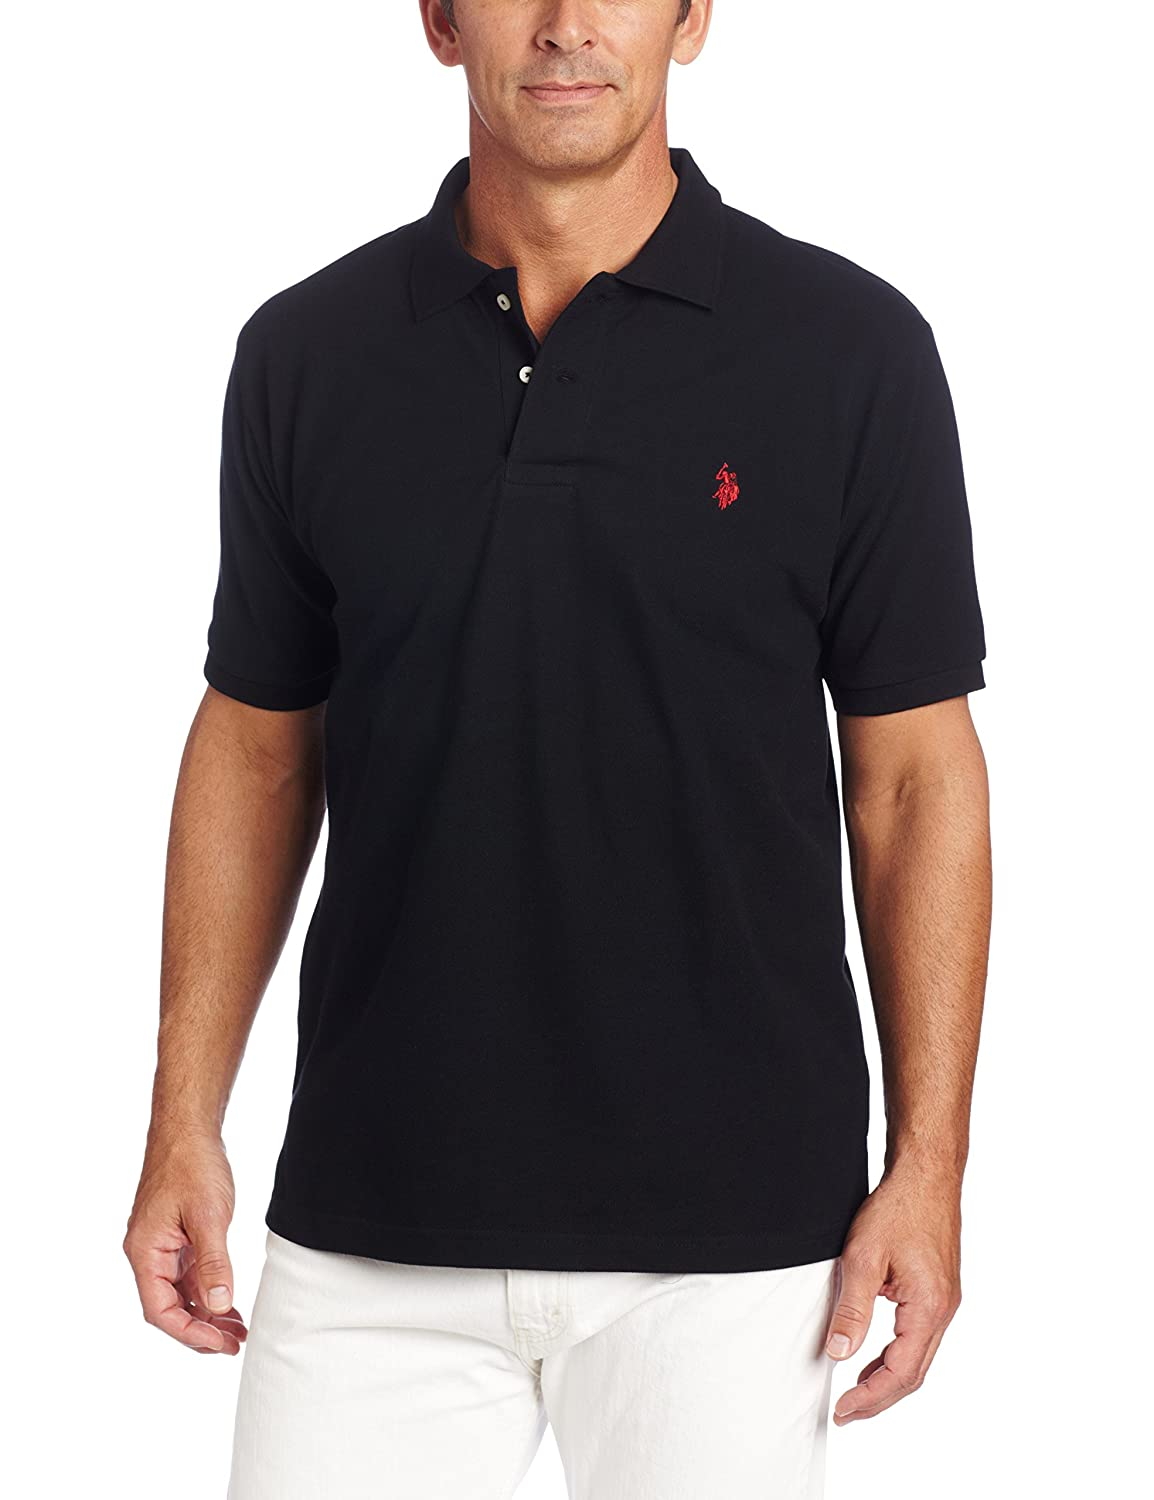 U.S. Polo Assn. Men